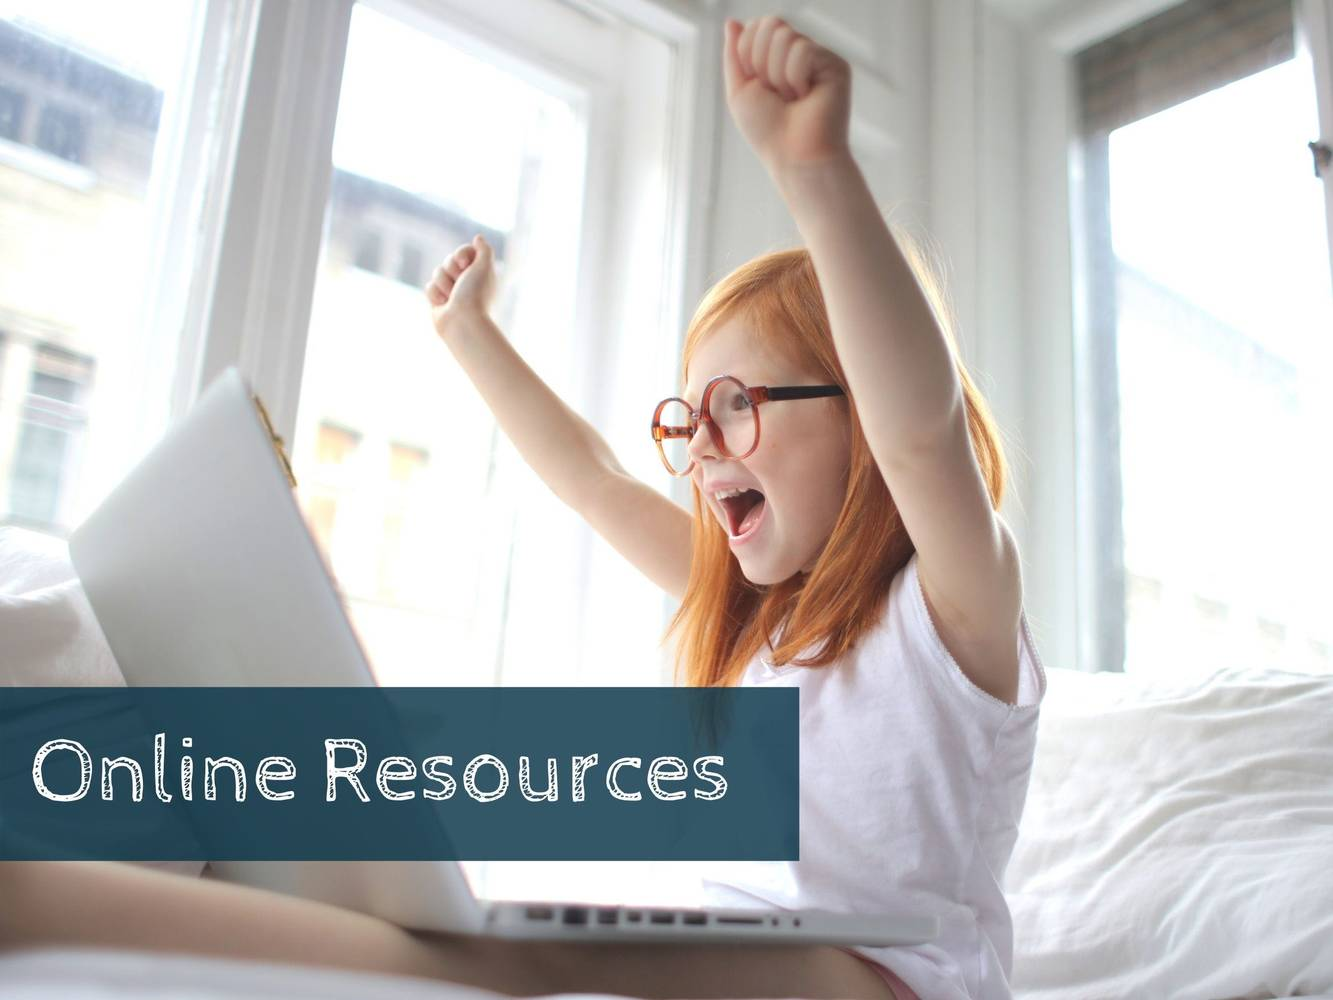 More Helpful Resources: Go Online